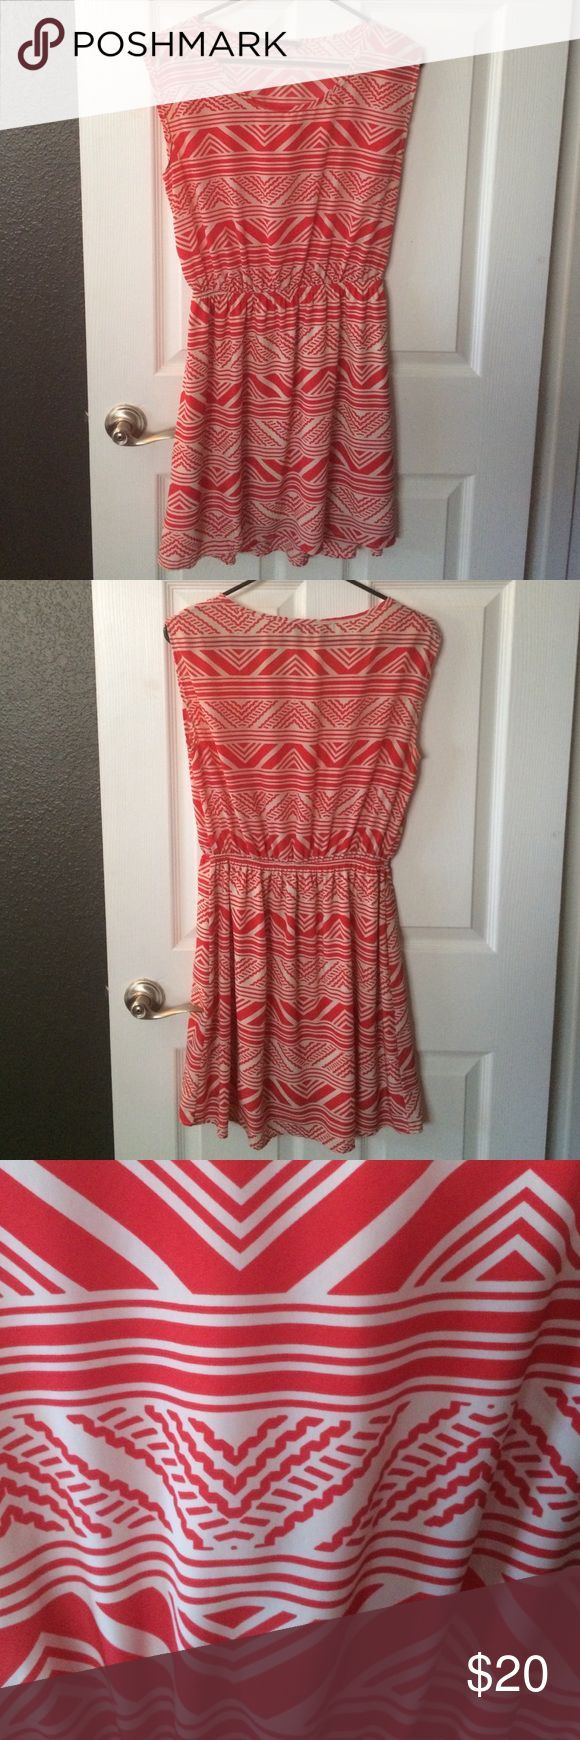 Tribal orange and cream dress Worn only a few times orange and cream sleeveless dress. Knee length. Very lightweight. Peach love cream Dresses Midi